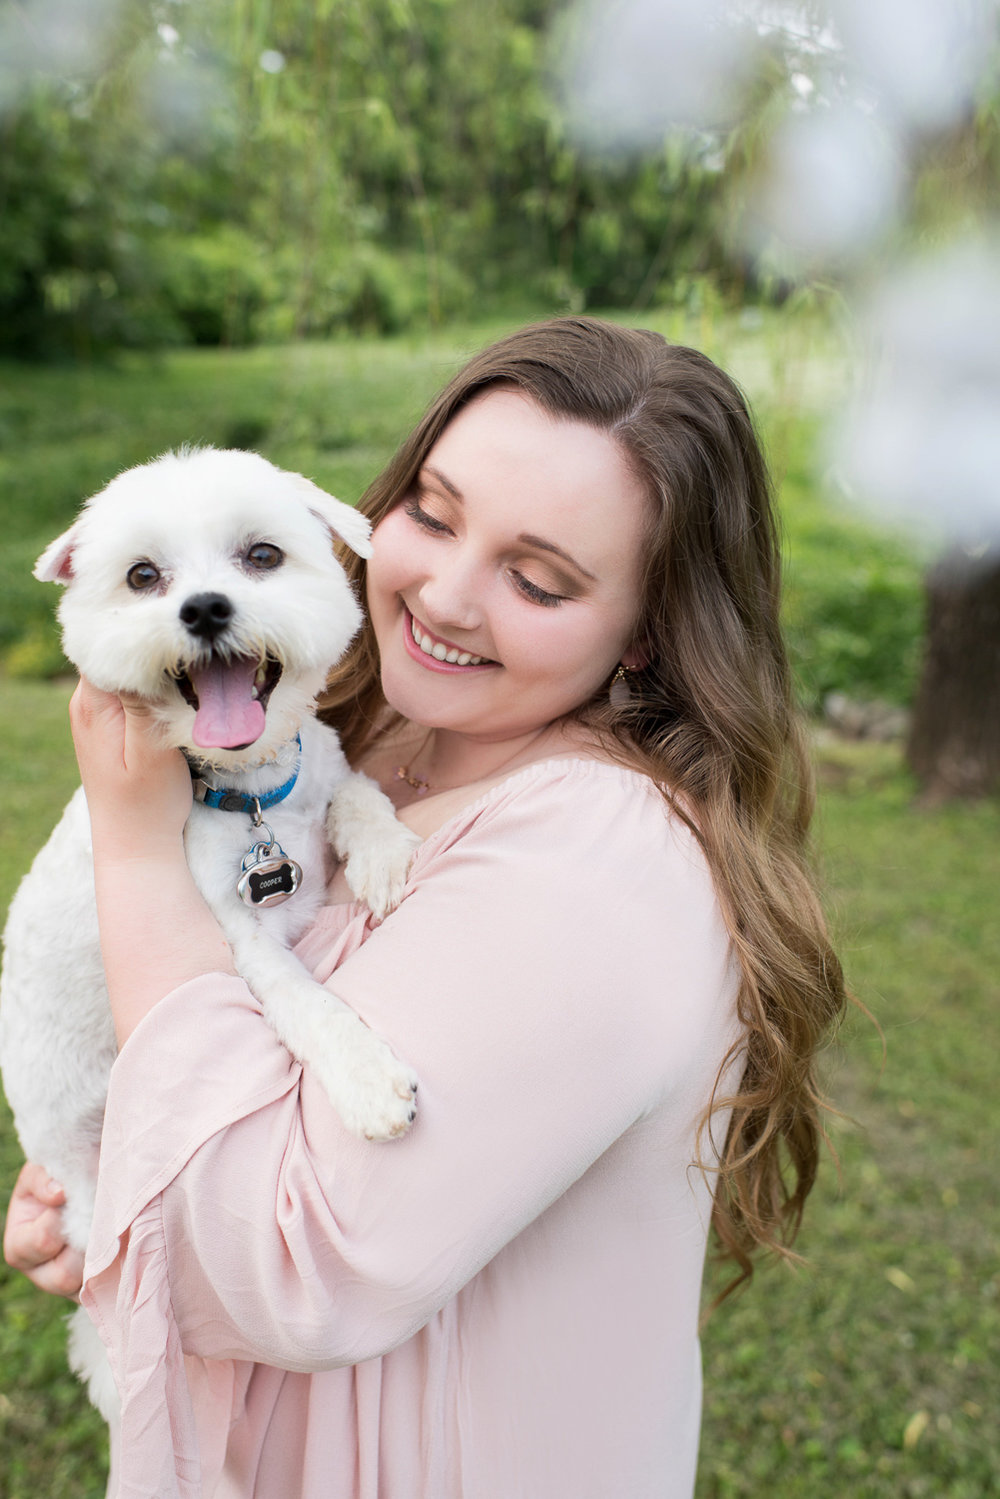 How to get better photos with your dog